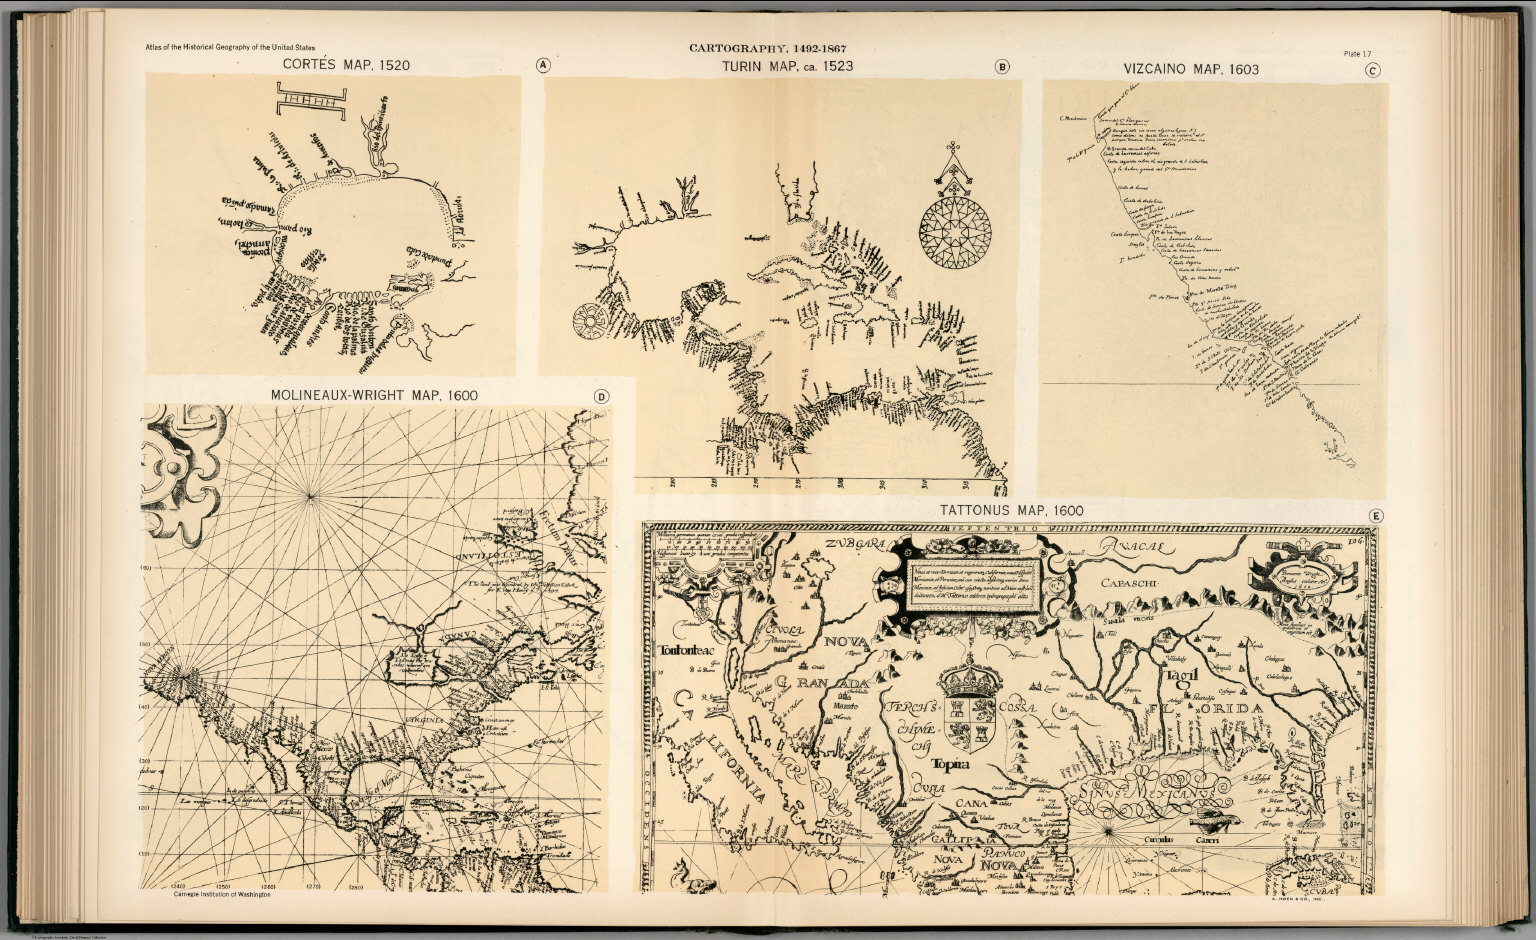 Plate 17. Facsimile Cartography 1492-1867. Cortes Map, 1520. Turin Map, ca. 1523, etc.